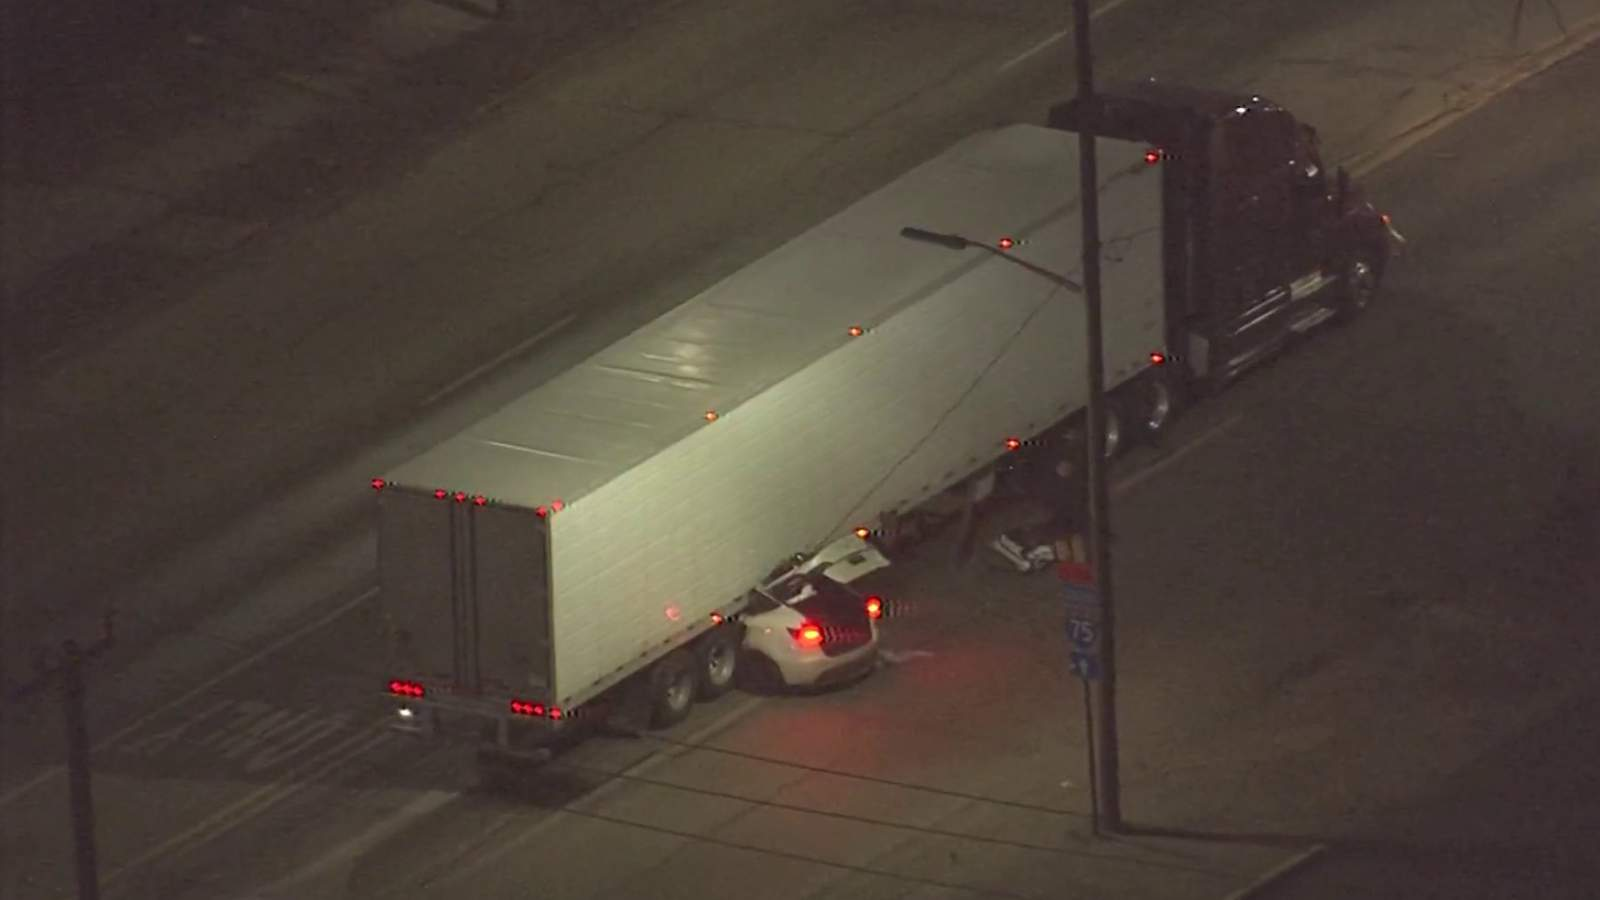 Woman in critical condition after car gets wedged under semi truck in Detroit